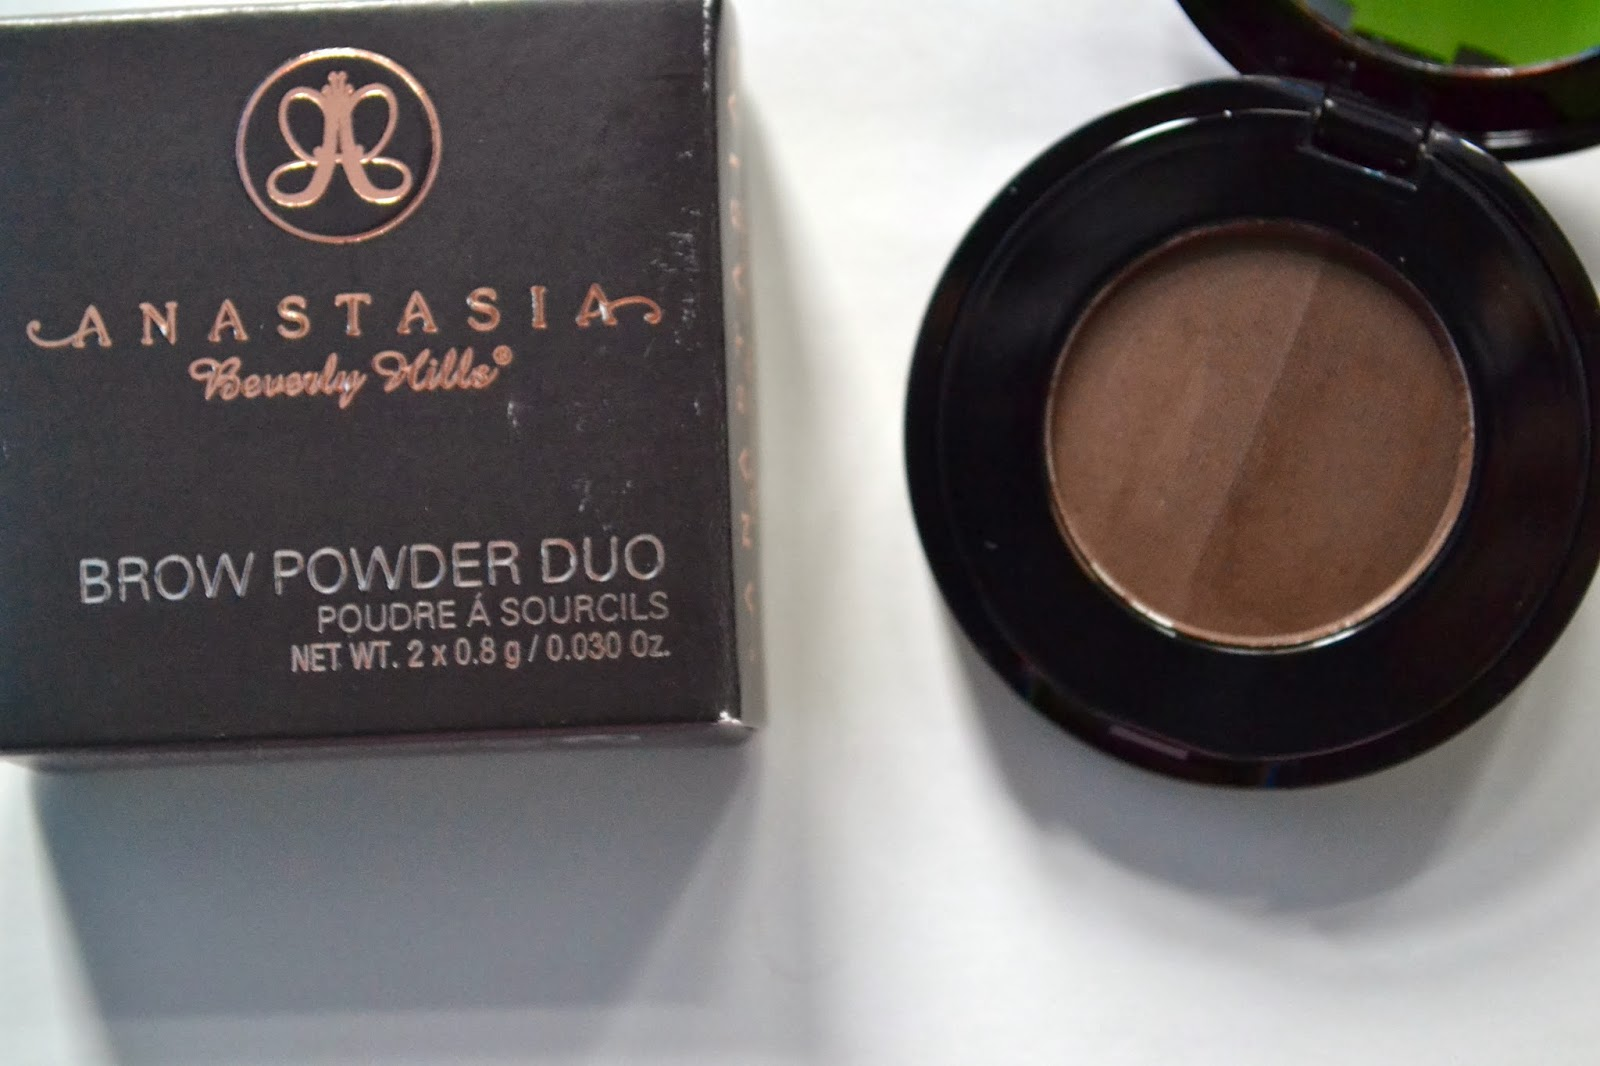 ANASTASIA Brow Powder Duo in Chocolate